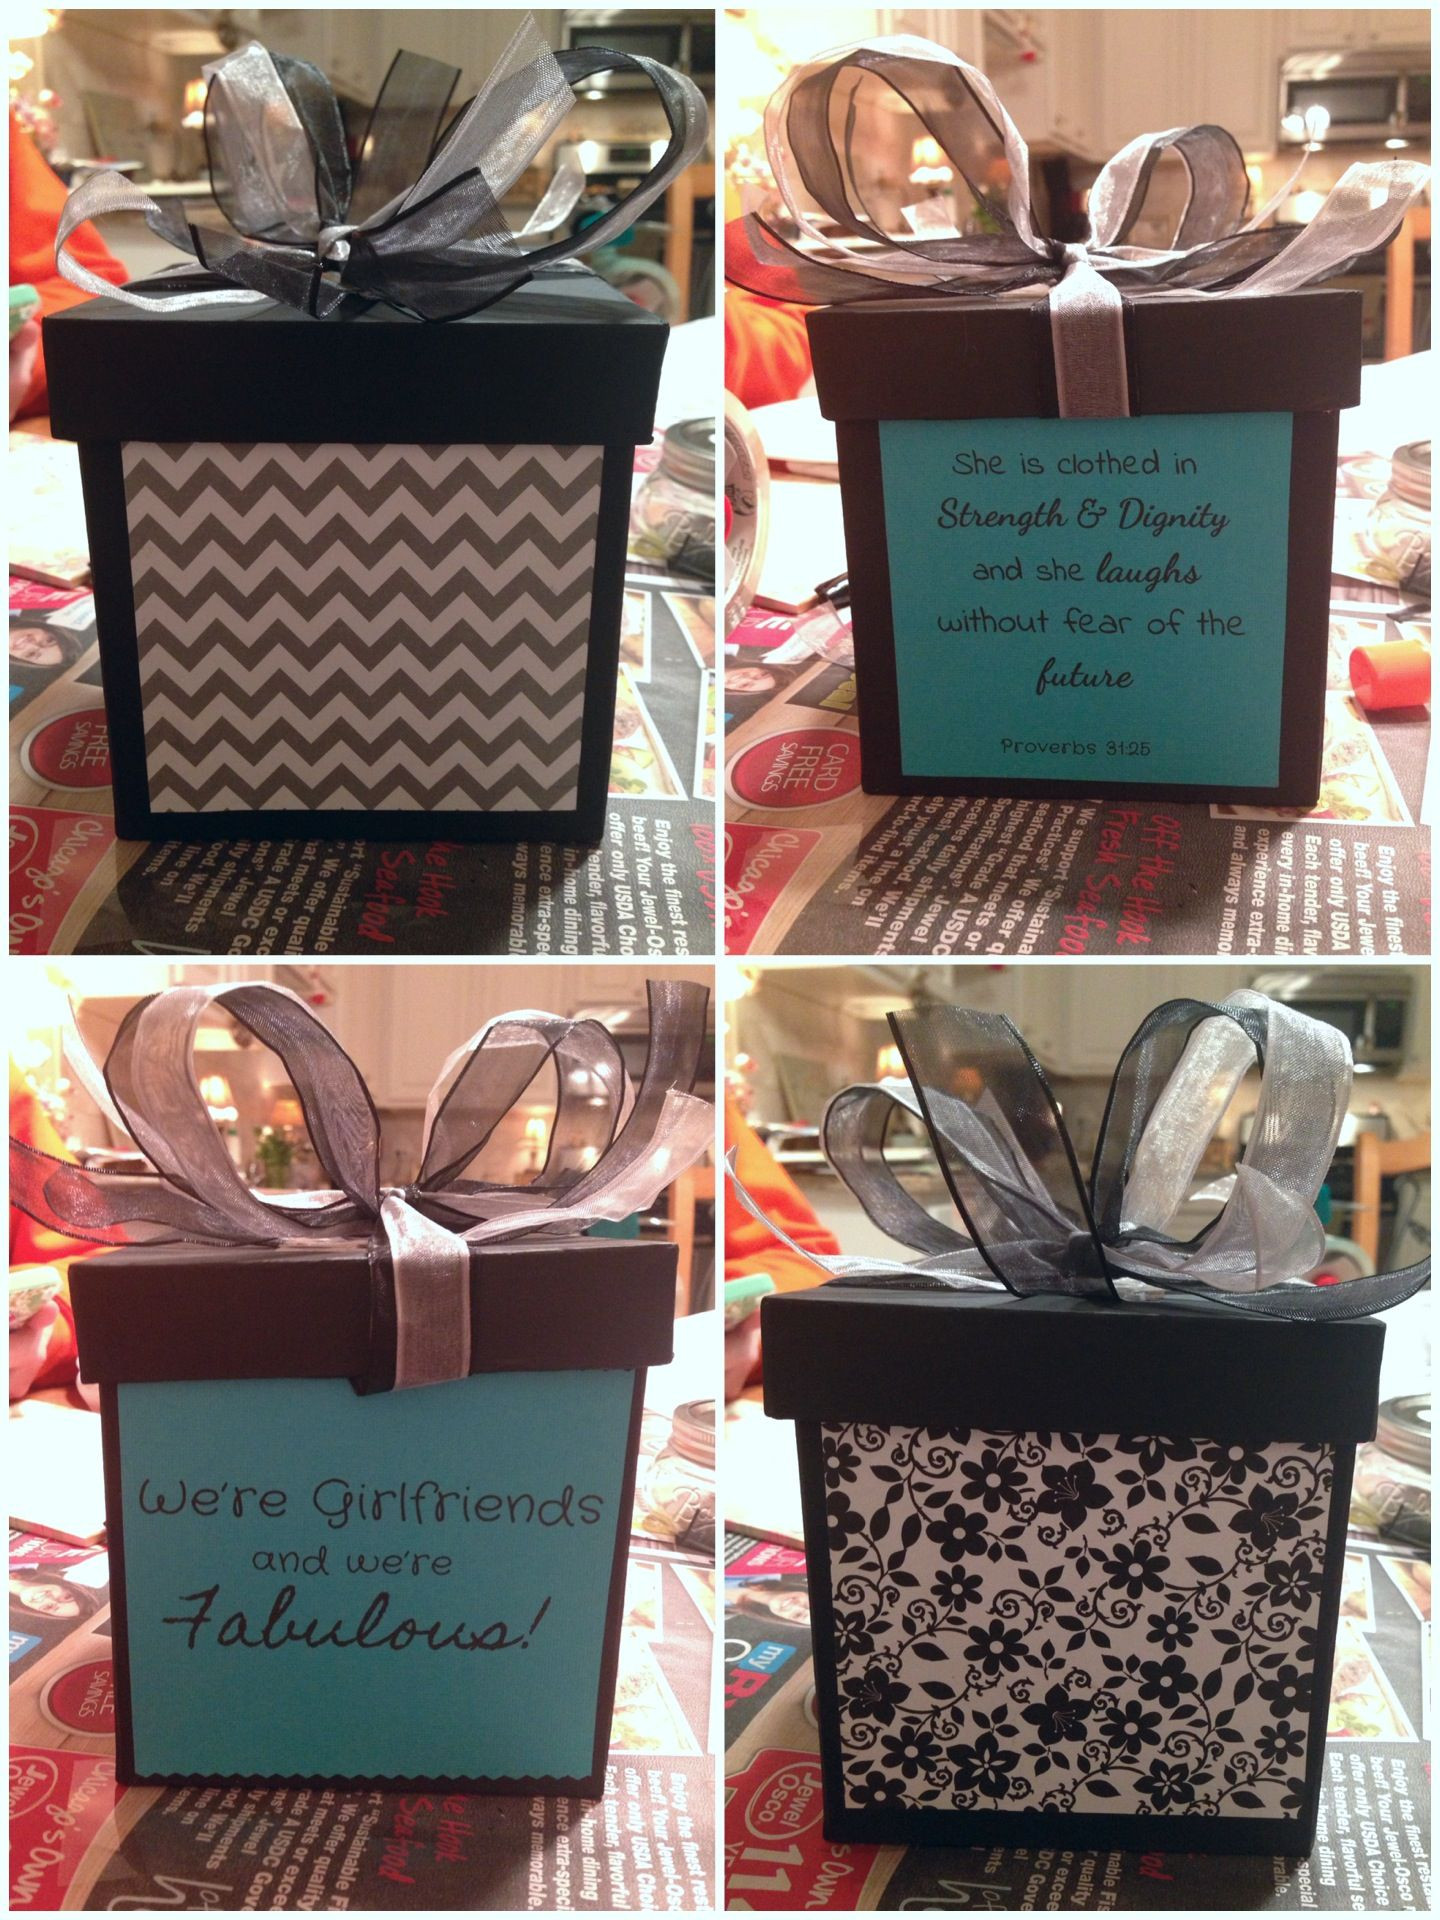 The Best Birthday Gift Ideas for Woman Friend - Home ...